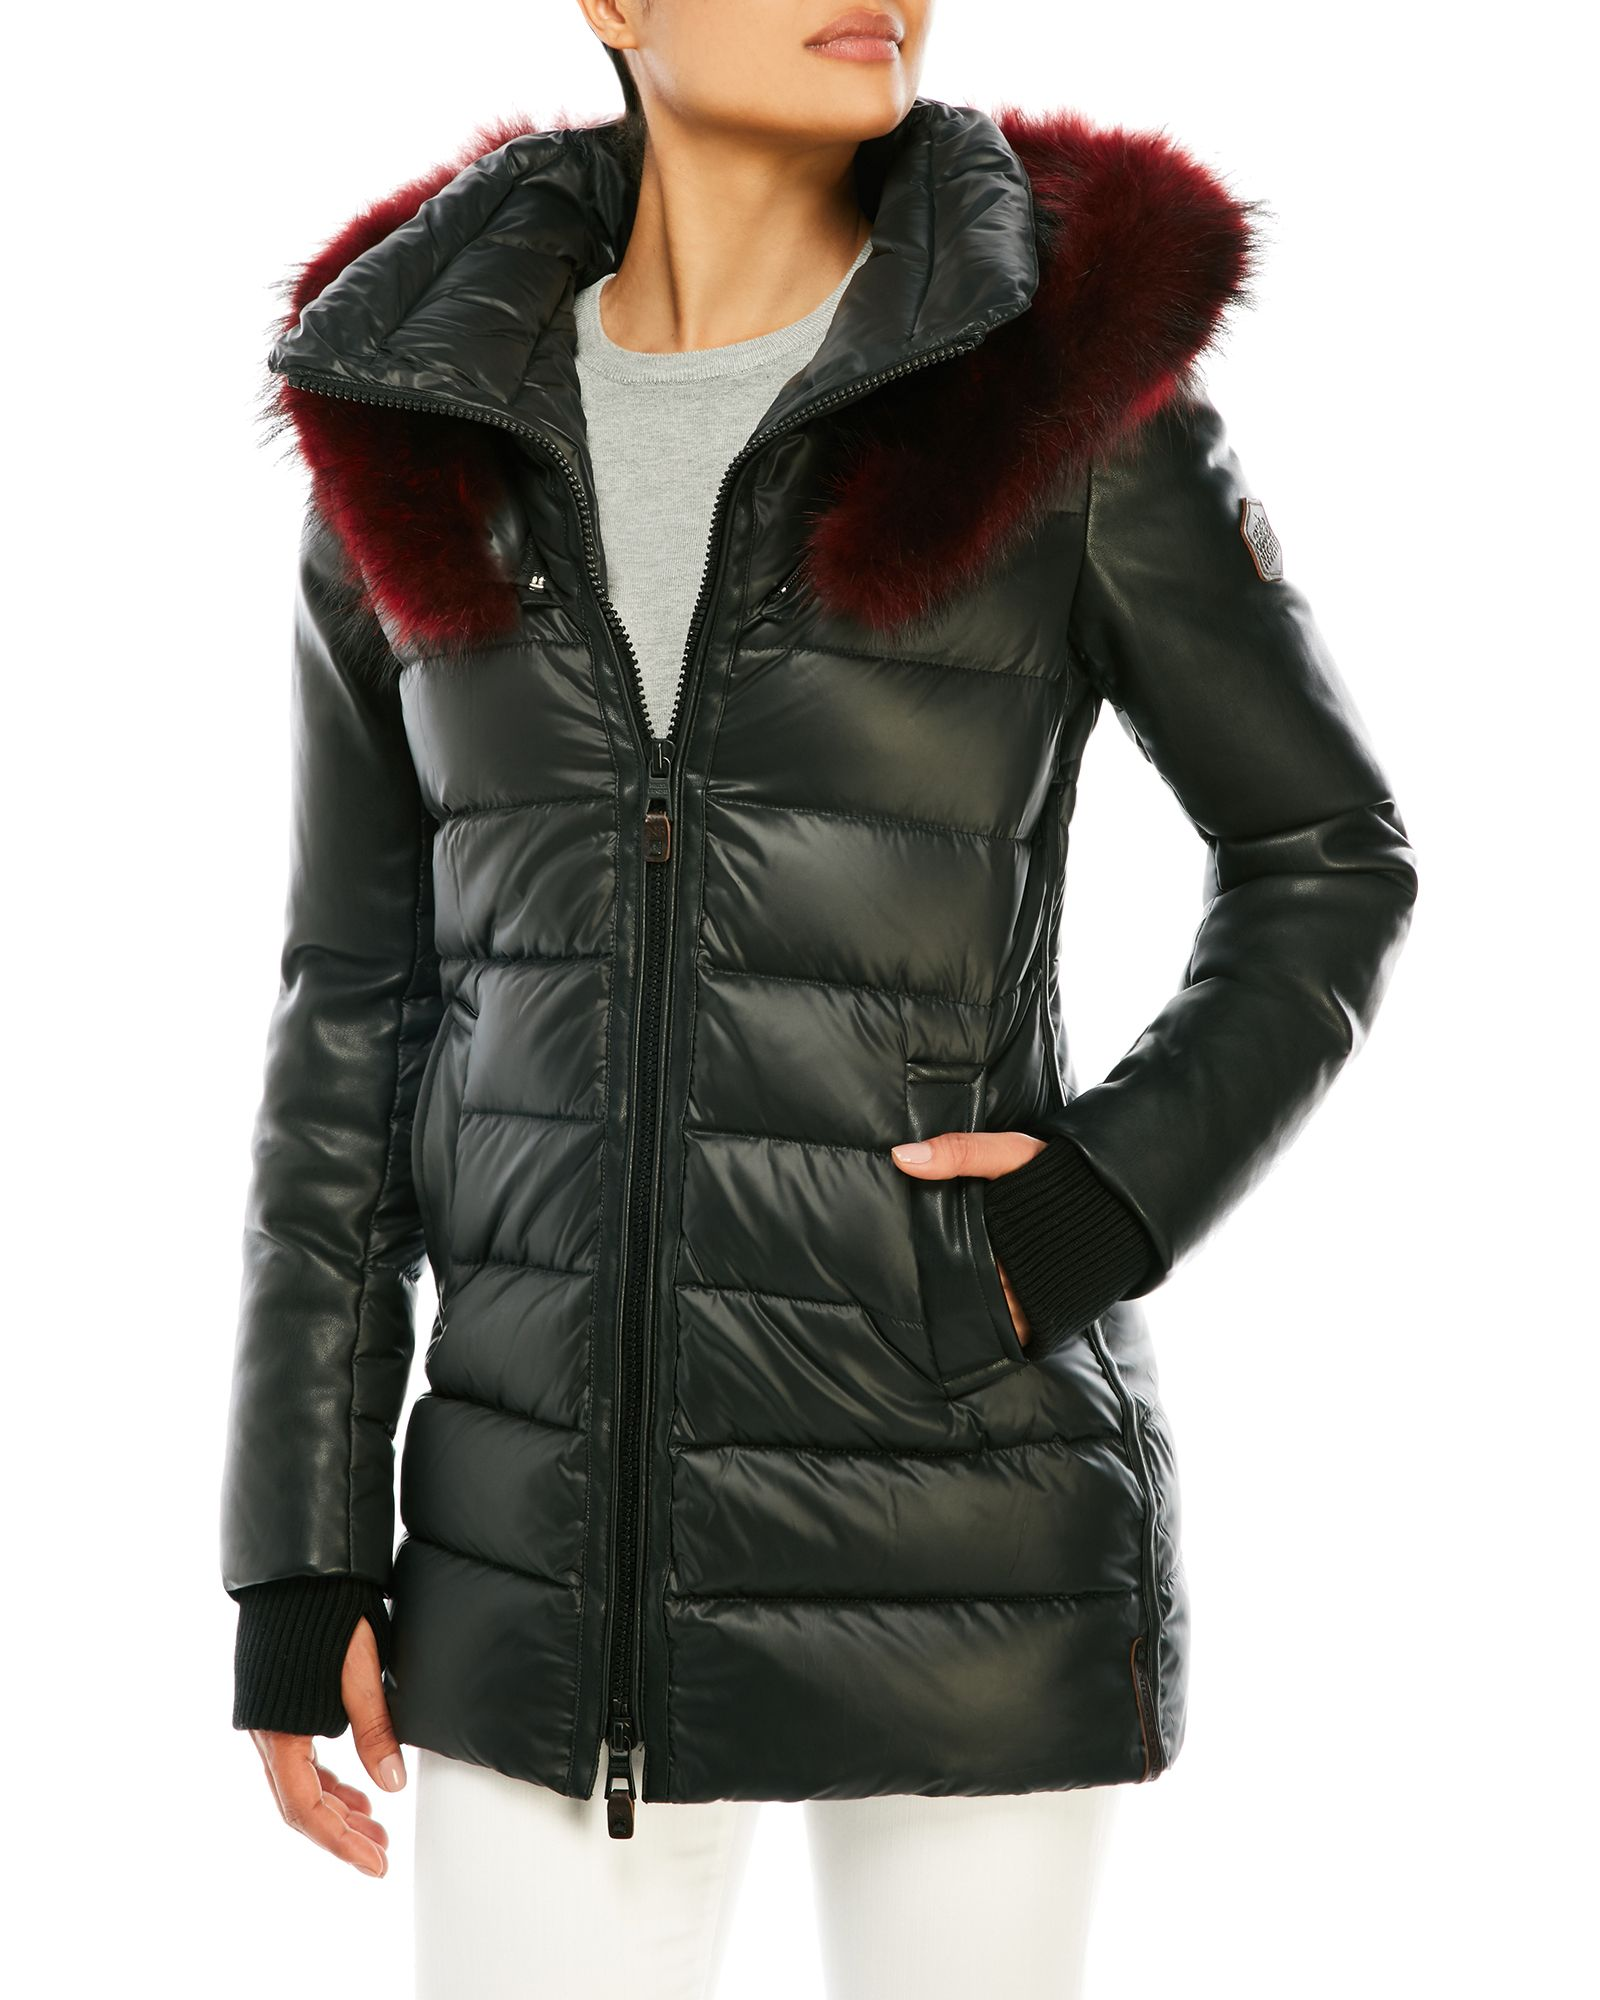 Quilted Puffer Jacket With Real Fur Trim Quilted Puffer Jacket Jackets Puffer Jackets [ 2000 x 1600 Pixel ]